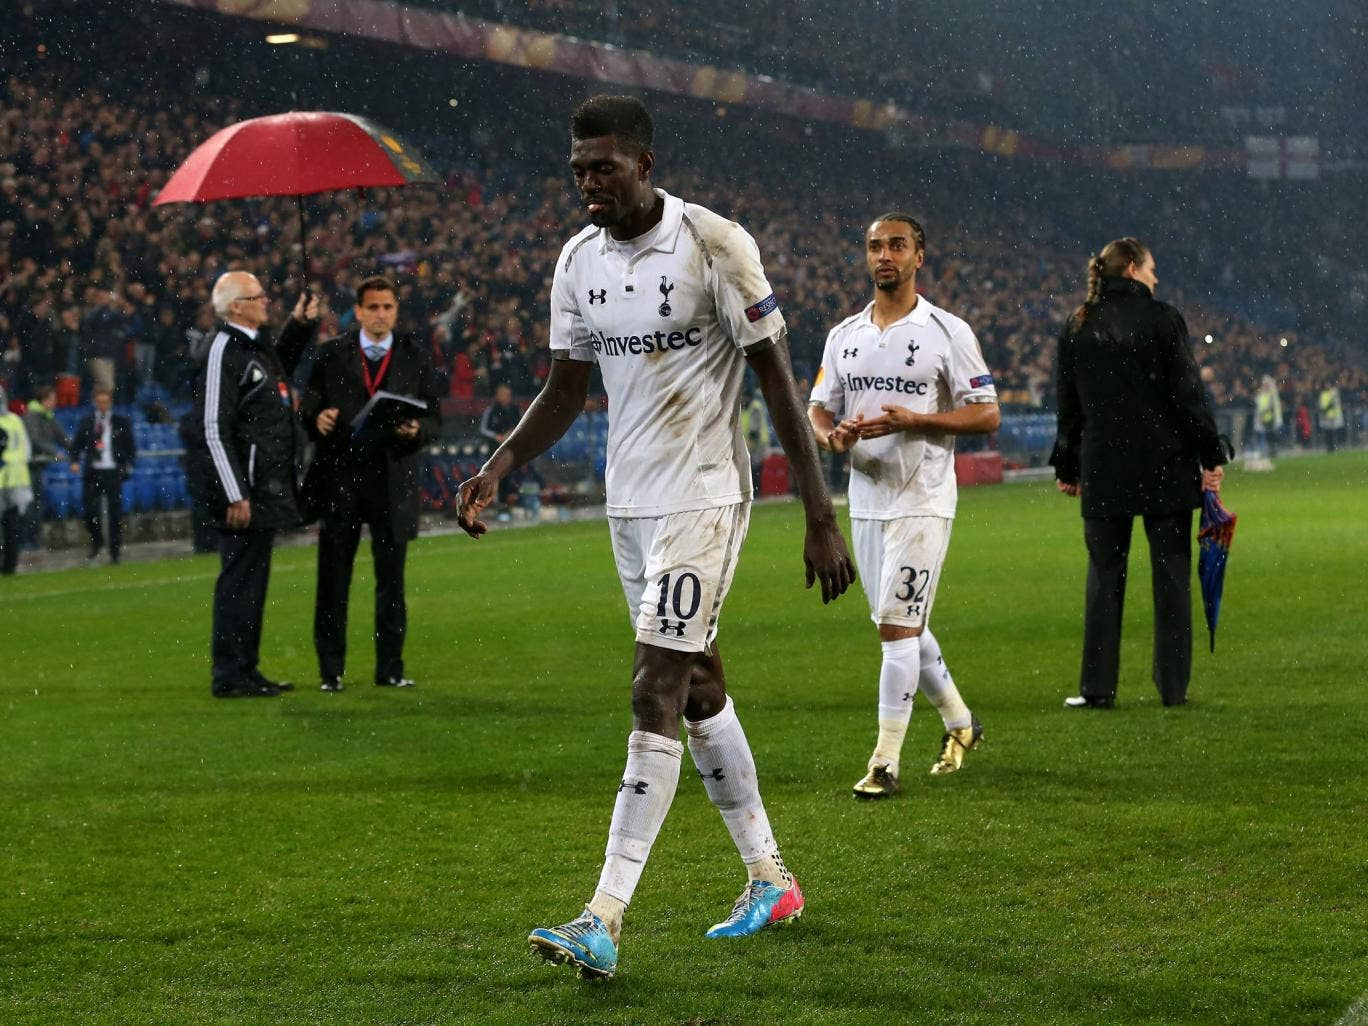 Emmanuel Adebayor leaves the pitch in Basel after defeat on penalties